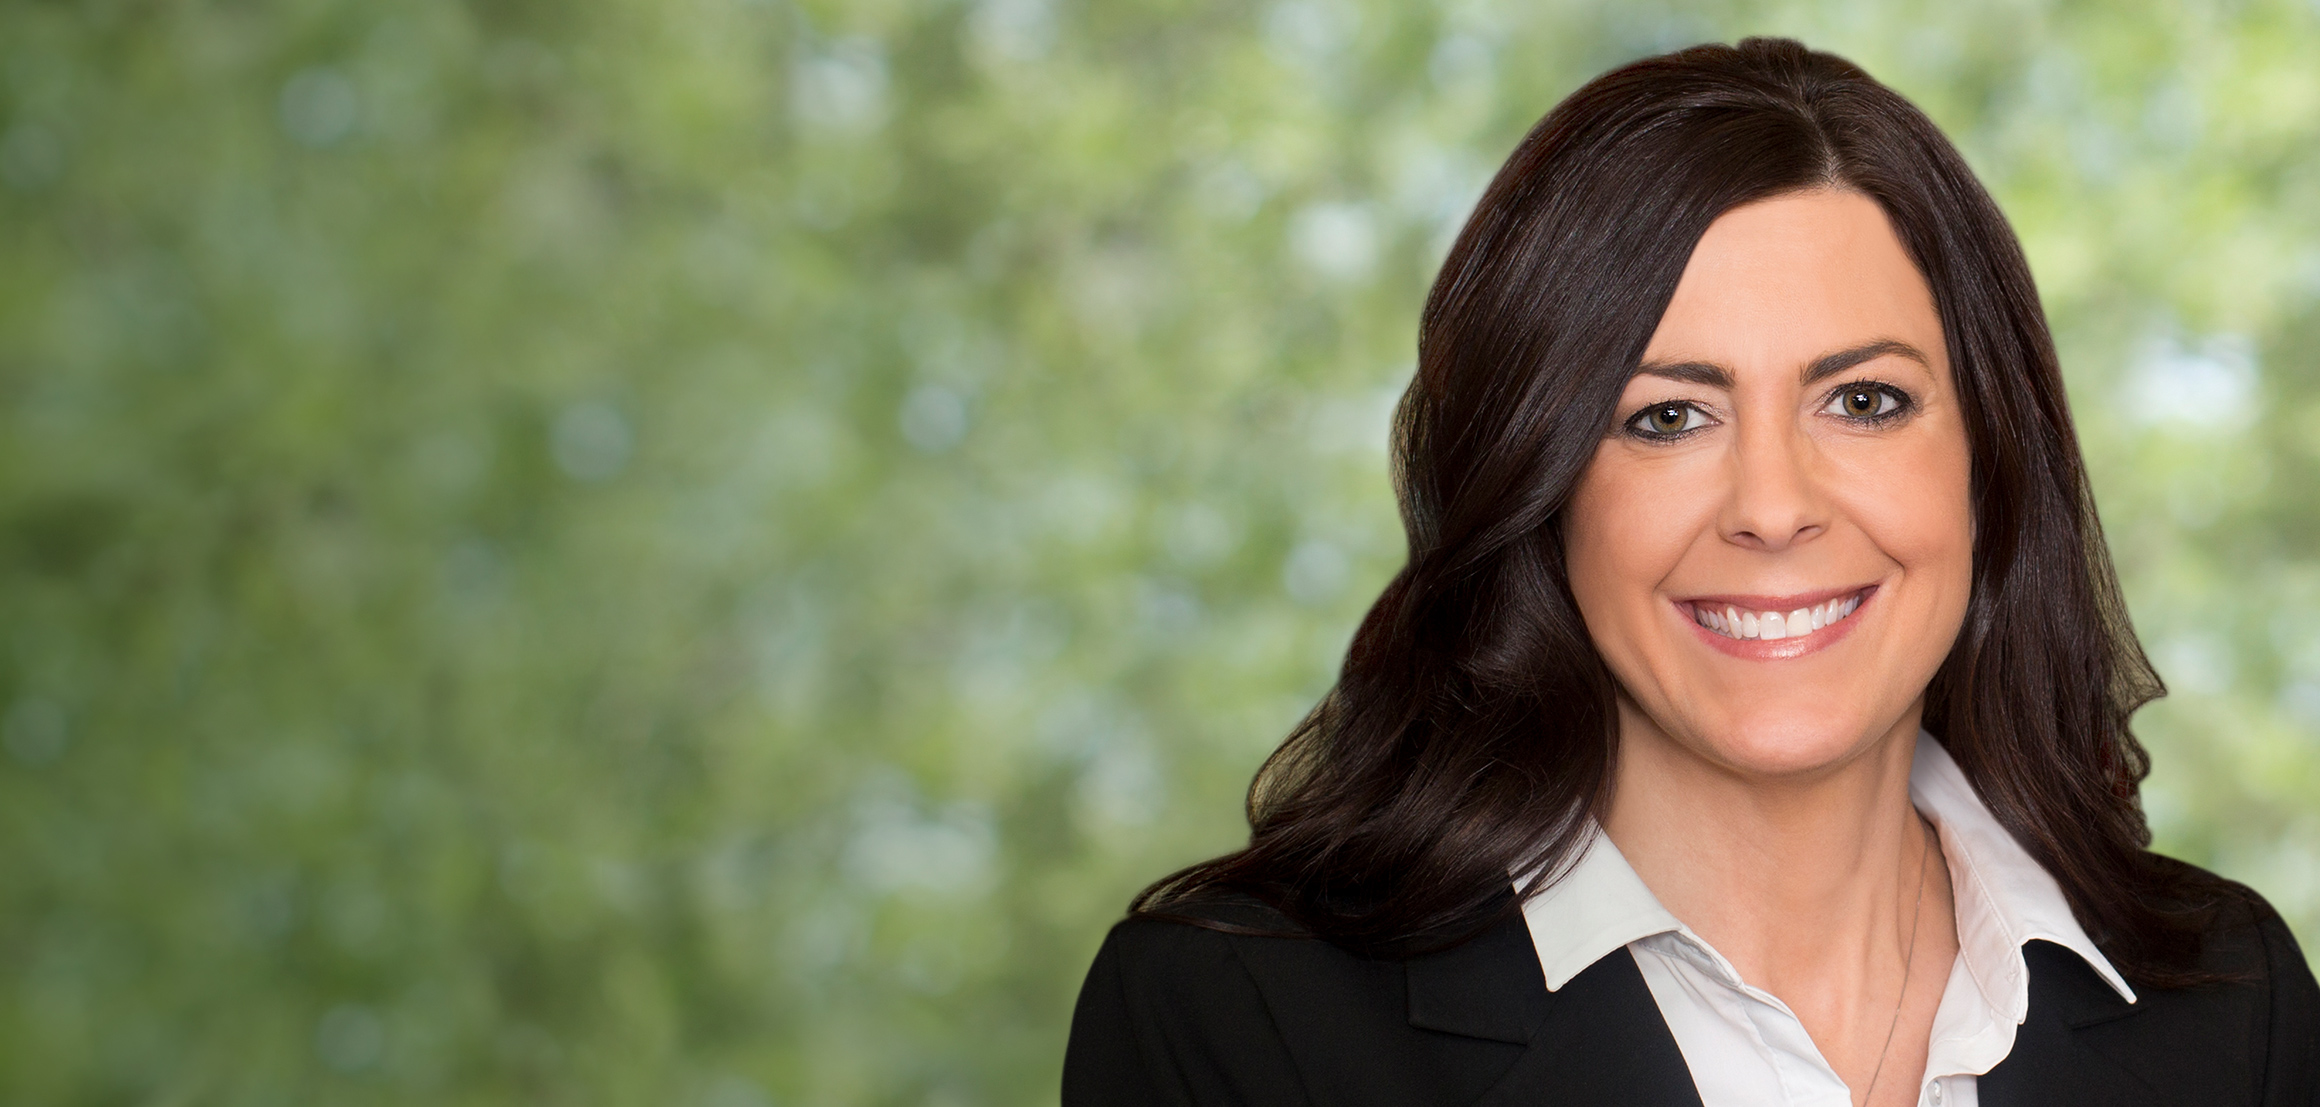 Heather Veik   Experienced litigator, providing results-oriented representation to businesses, employers & individuals   View Profile   Call: 1-800-279-3756